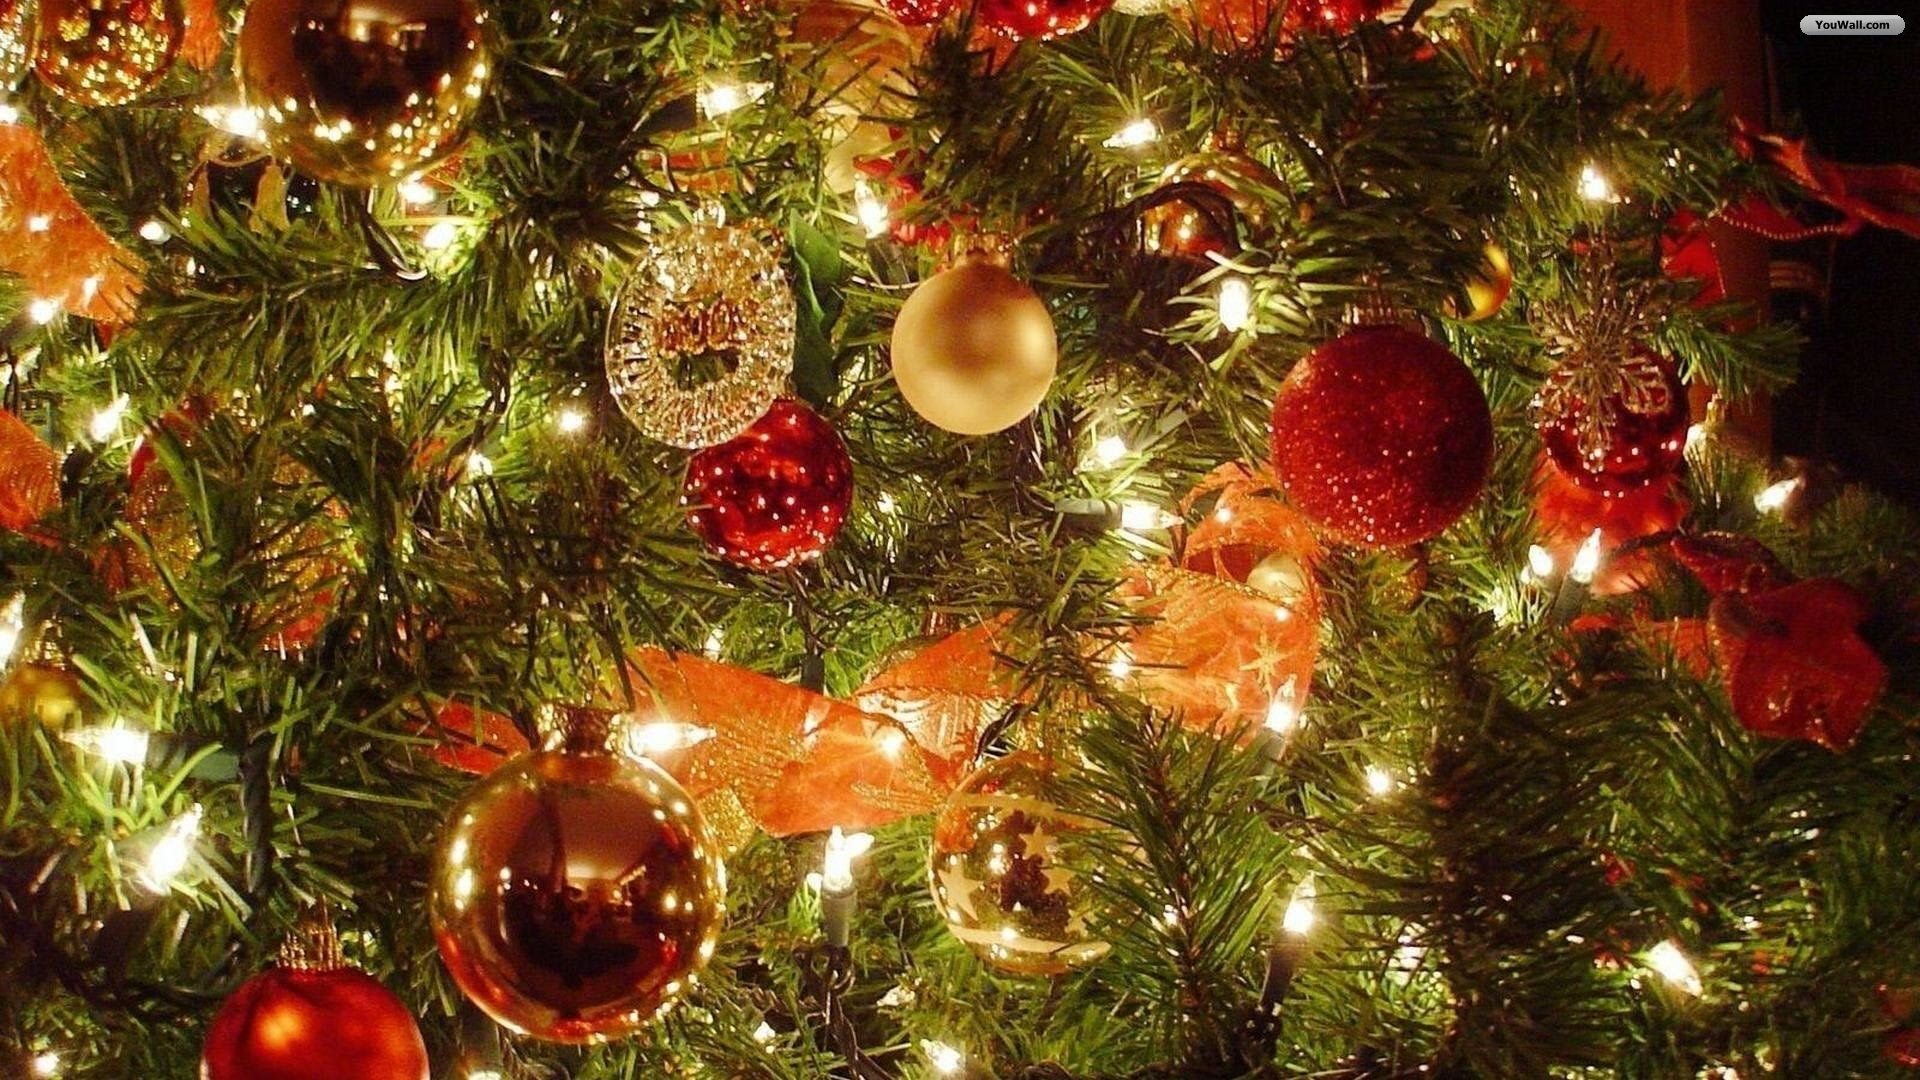 Download Holiday Desktop Wallpapers And Backgrounds 13